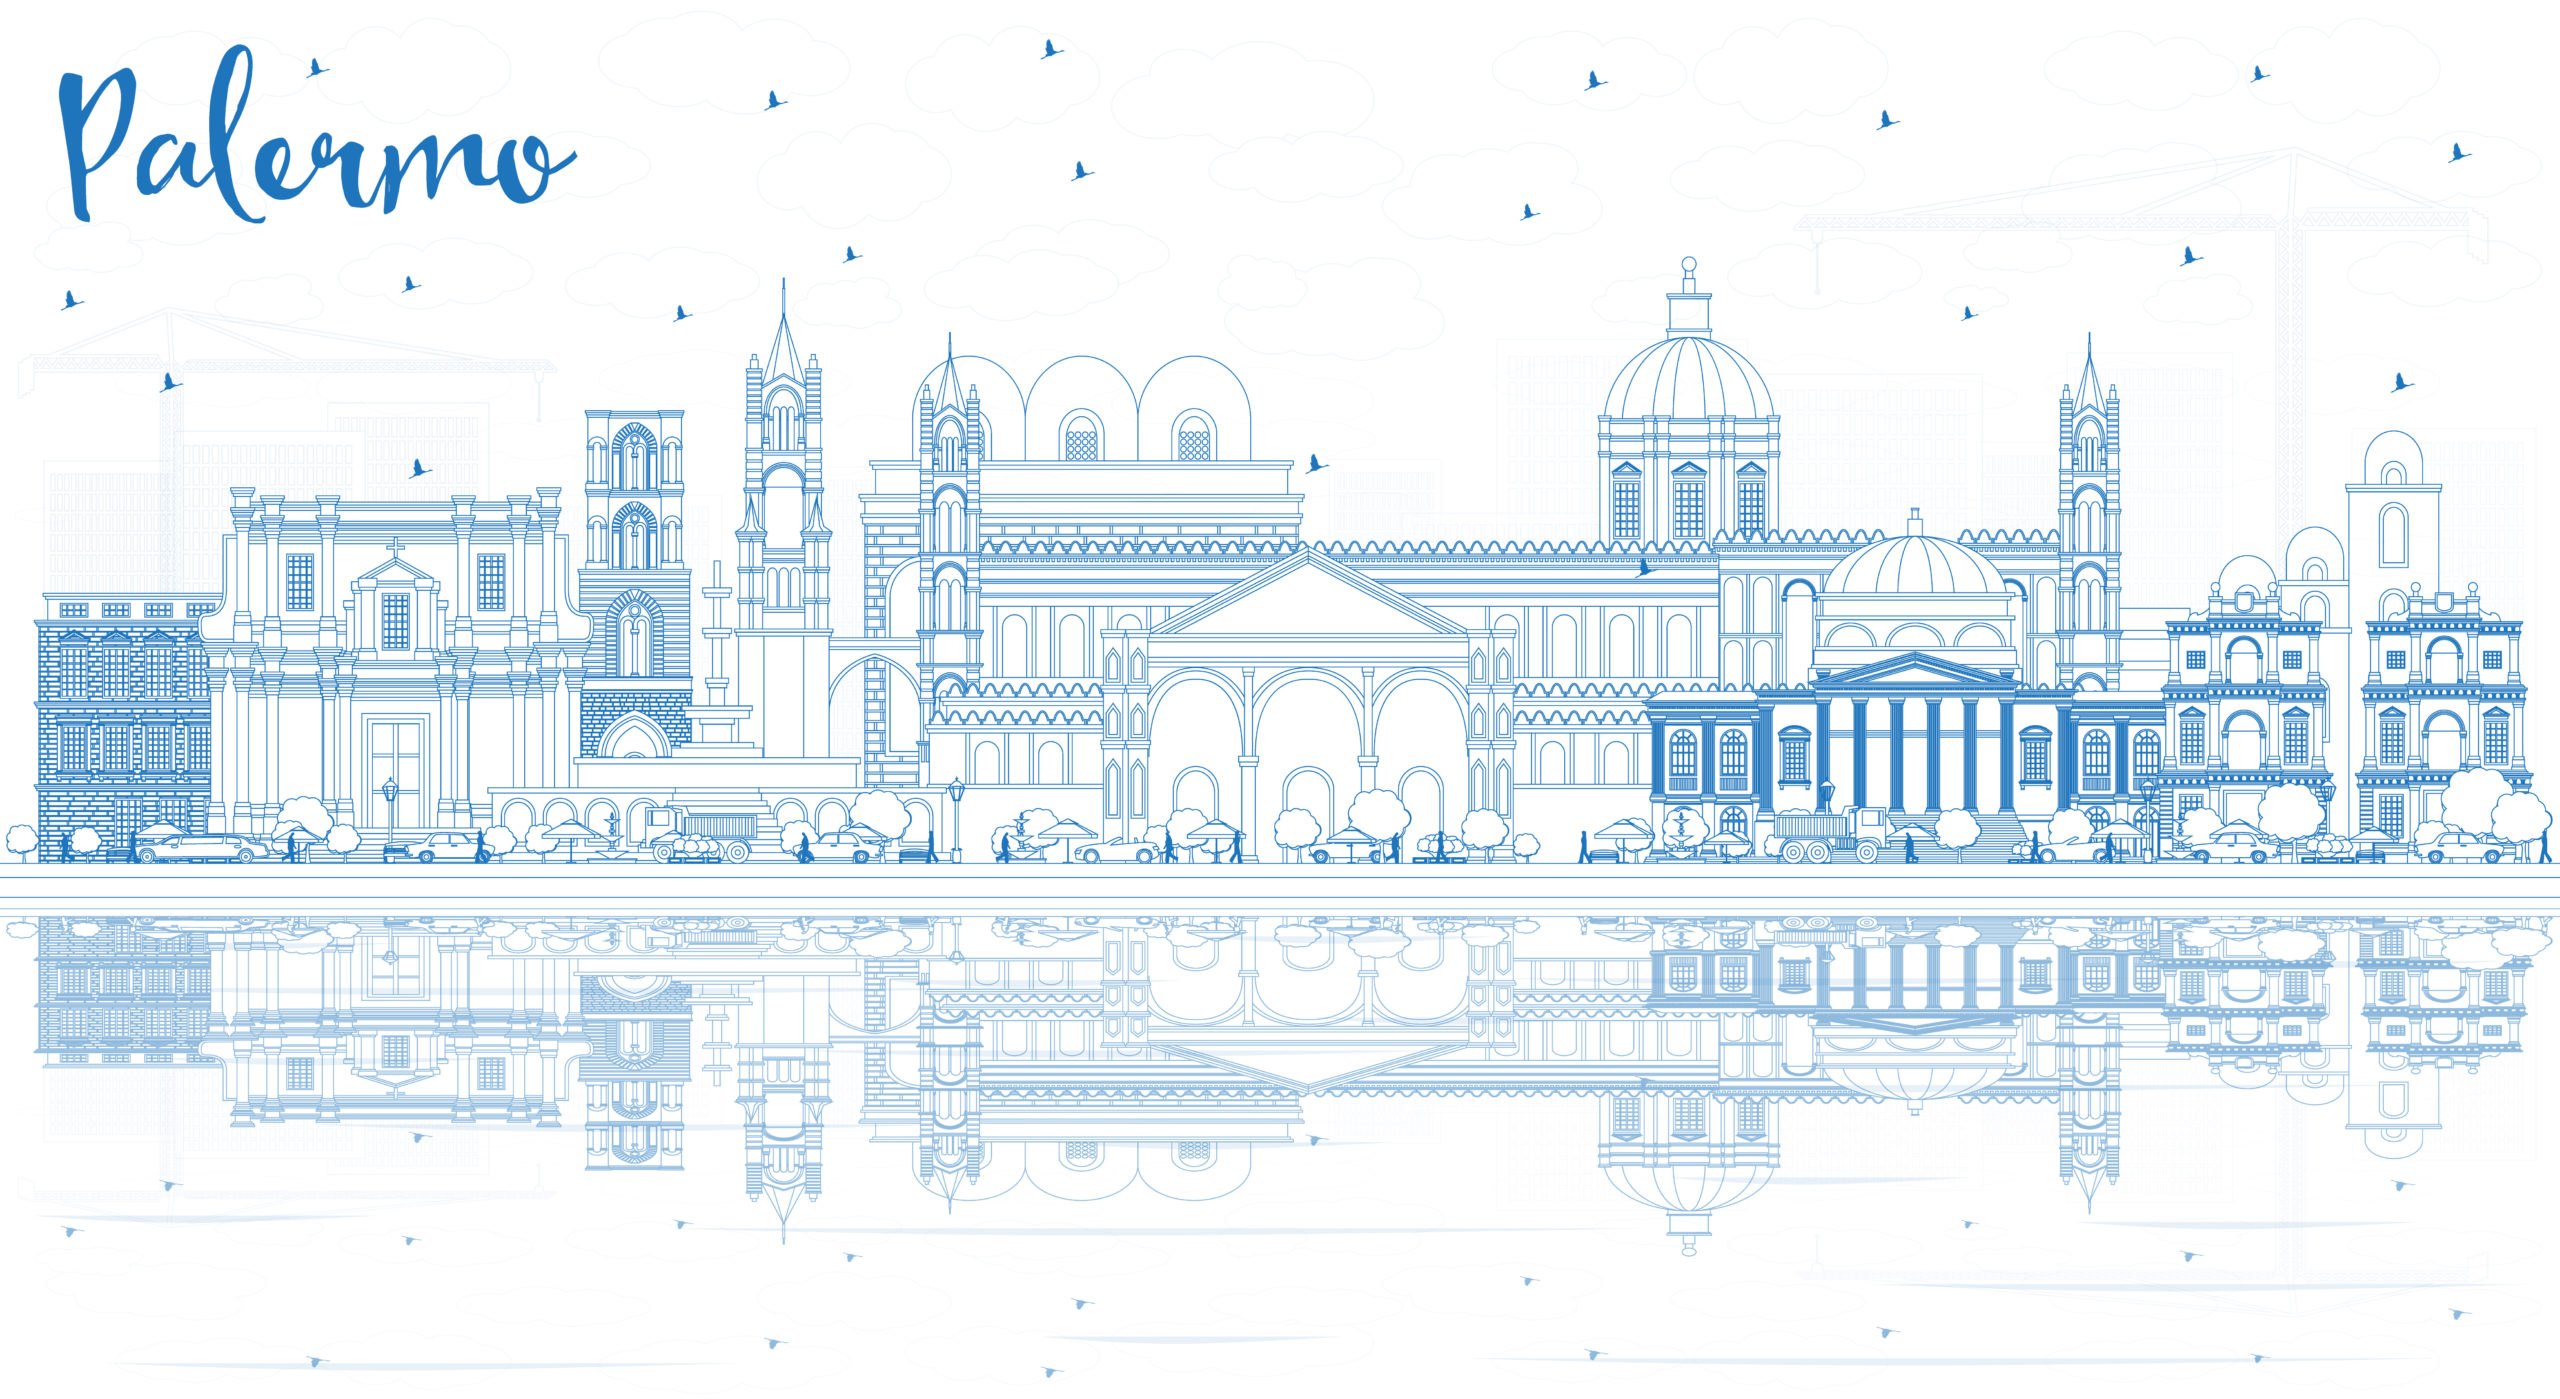 Outline Palermo Italy City Skyline with Blue Buildings and Reflections. Vector Illustration. Business Travel and Tourism Concept with Historic Architecture. Palermo Sicily Cityscape with Landmarks.